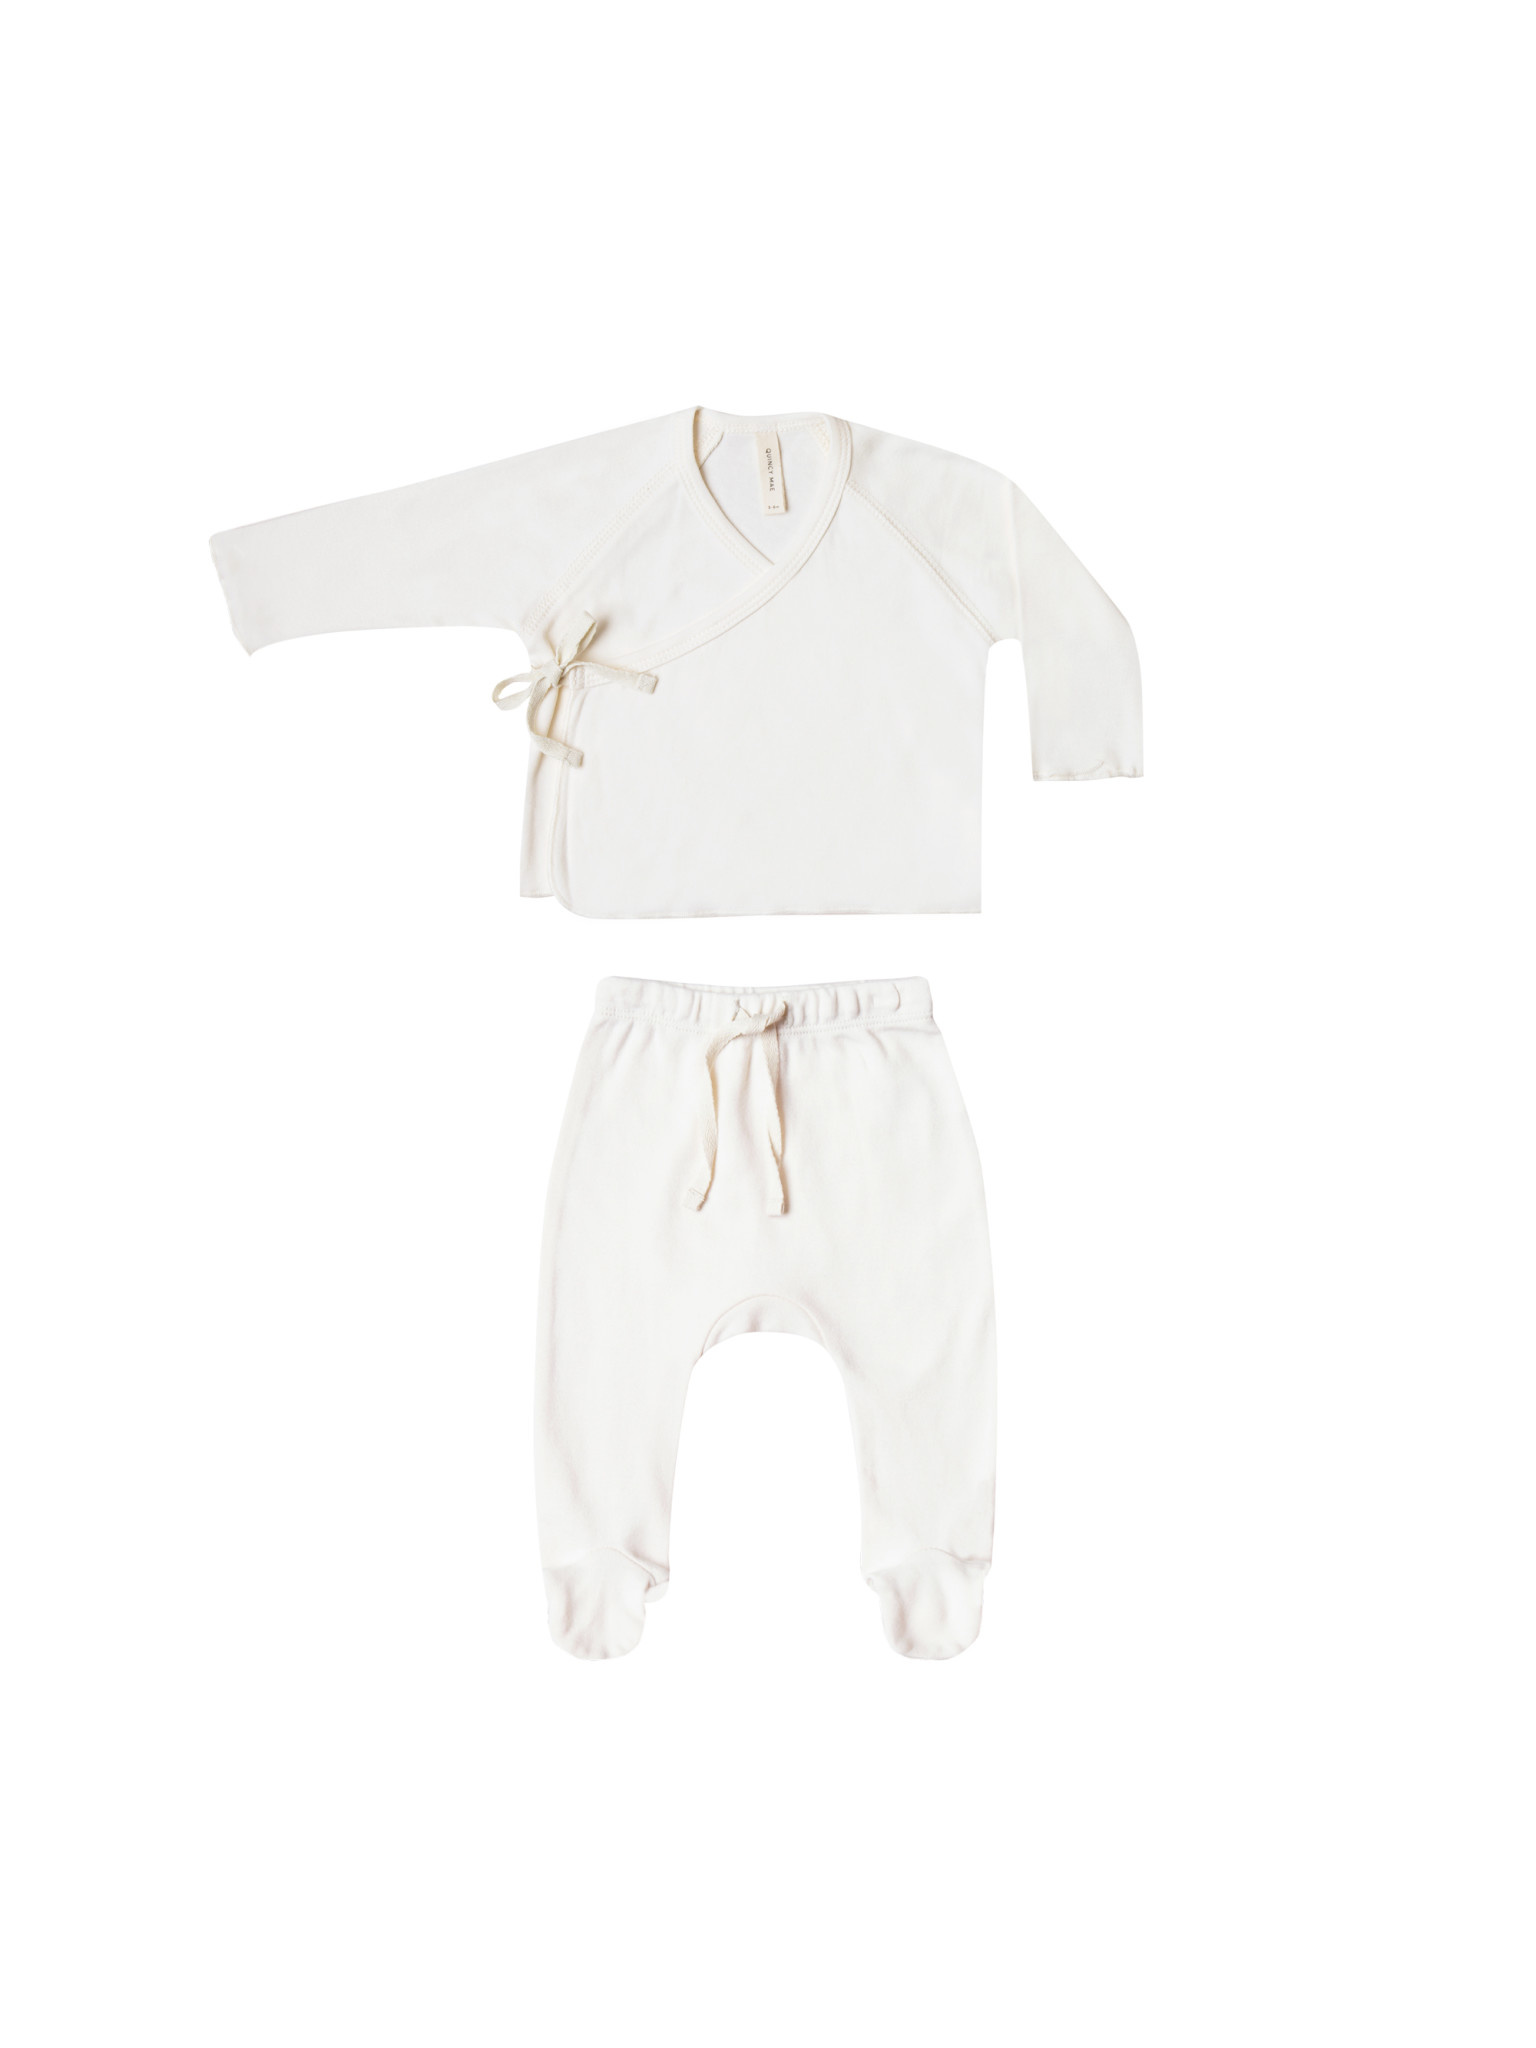 QUINCY MAE Organic Kimono Top and Footed Set